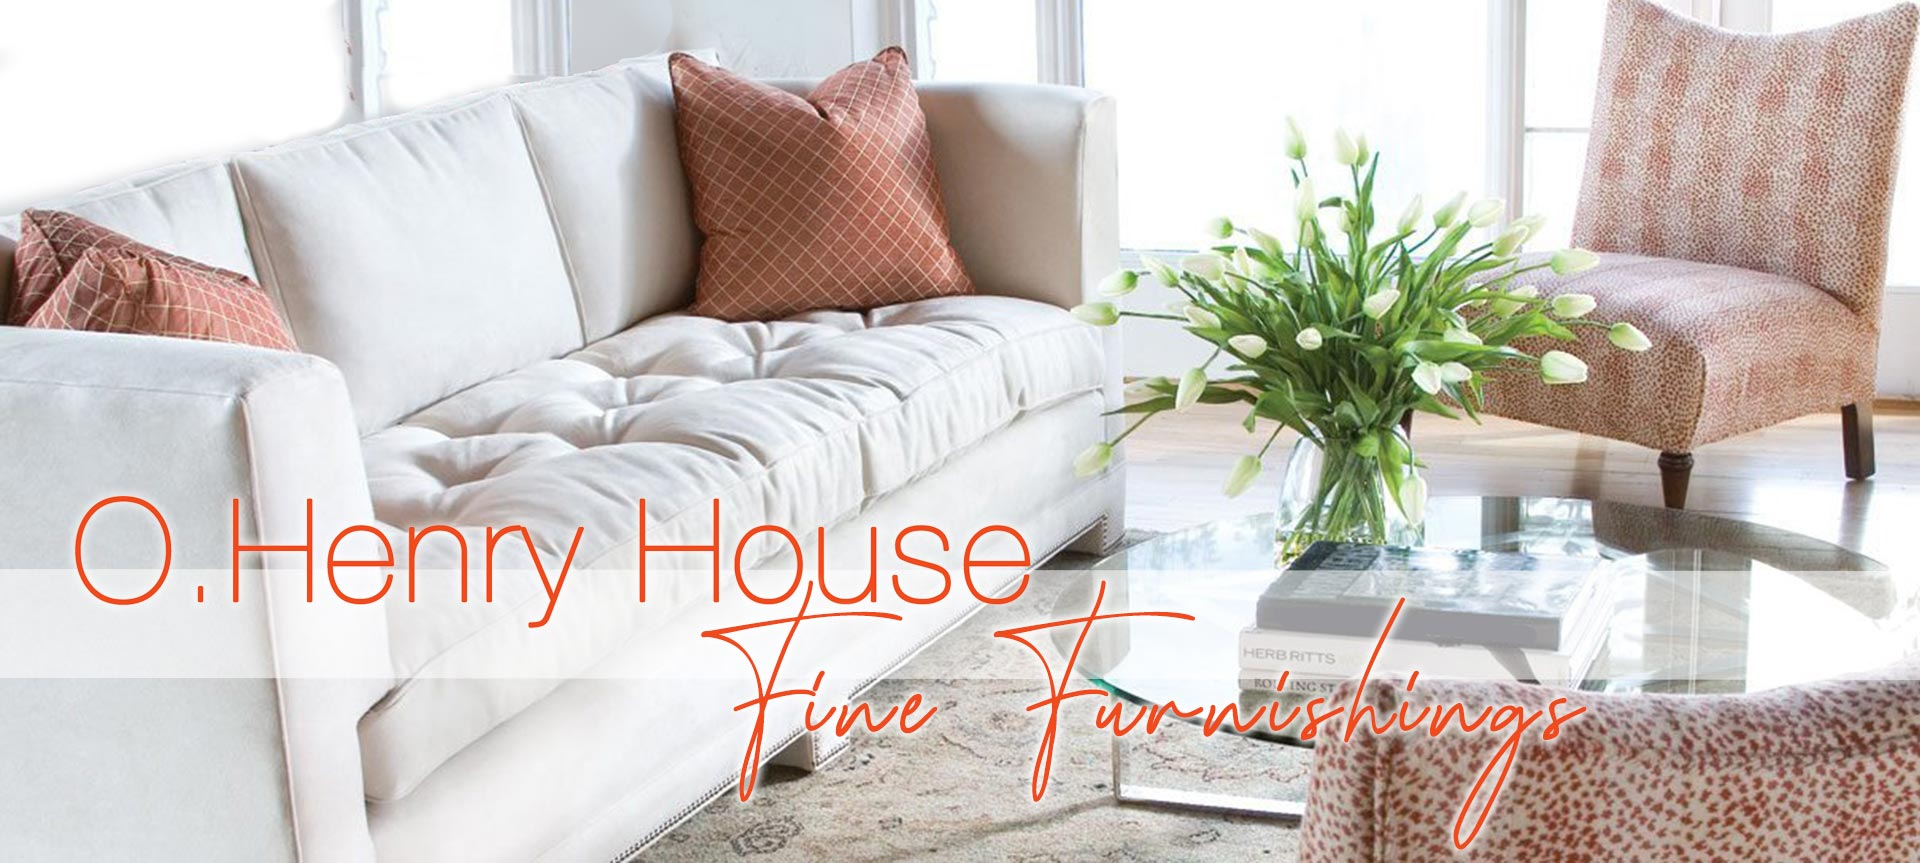 O Henry House Luxury Furniture Collection